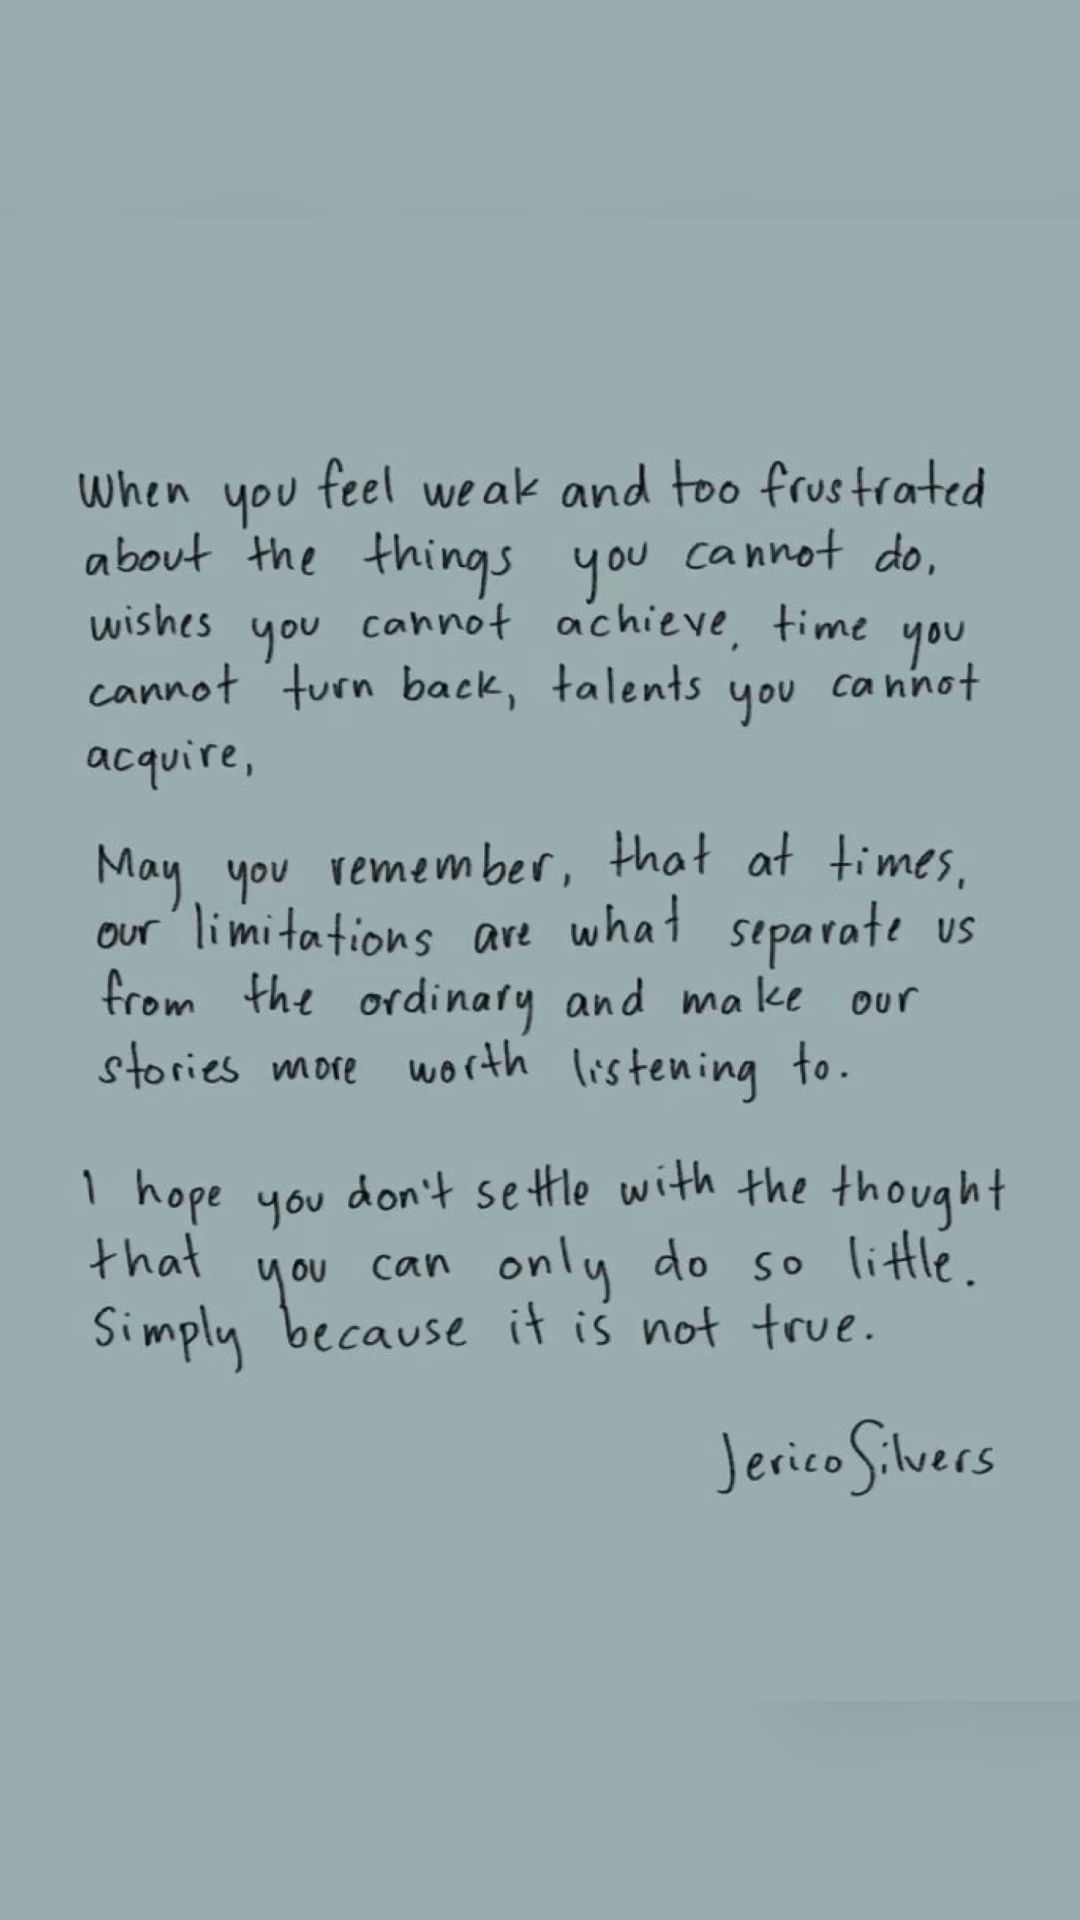 Words by Jerico Silvers